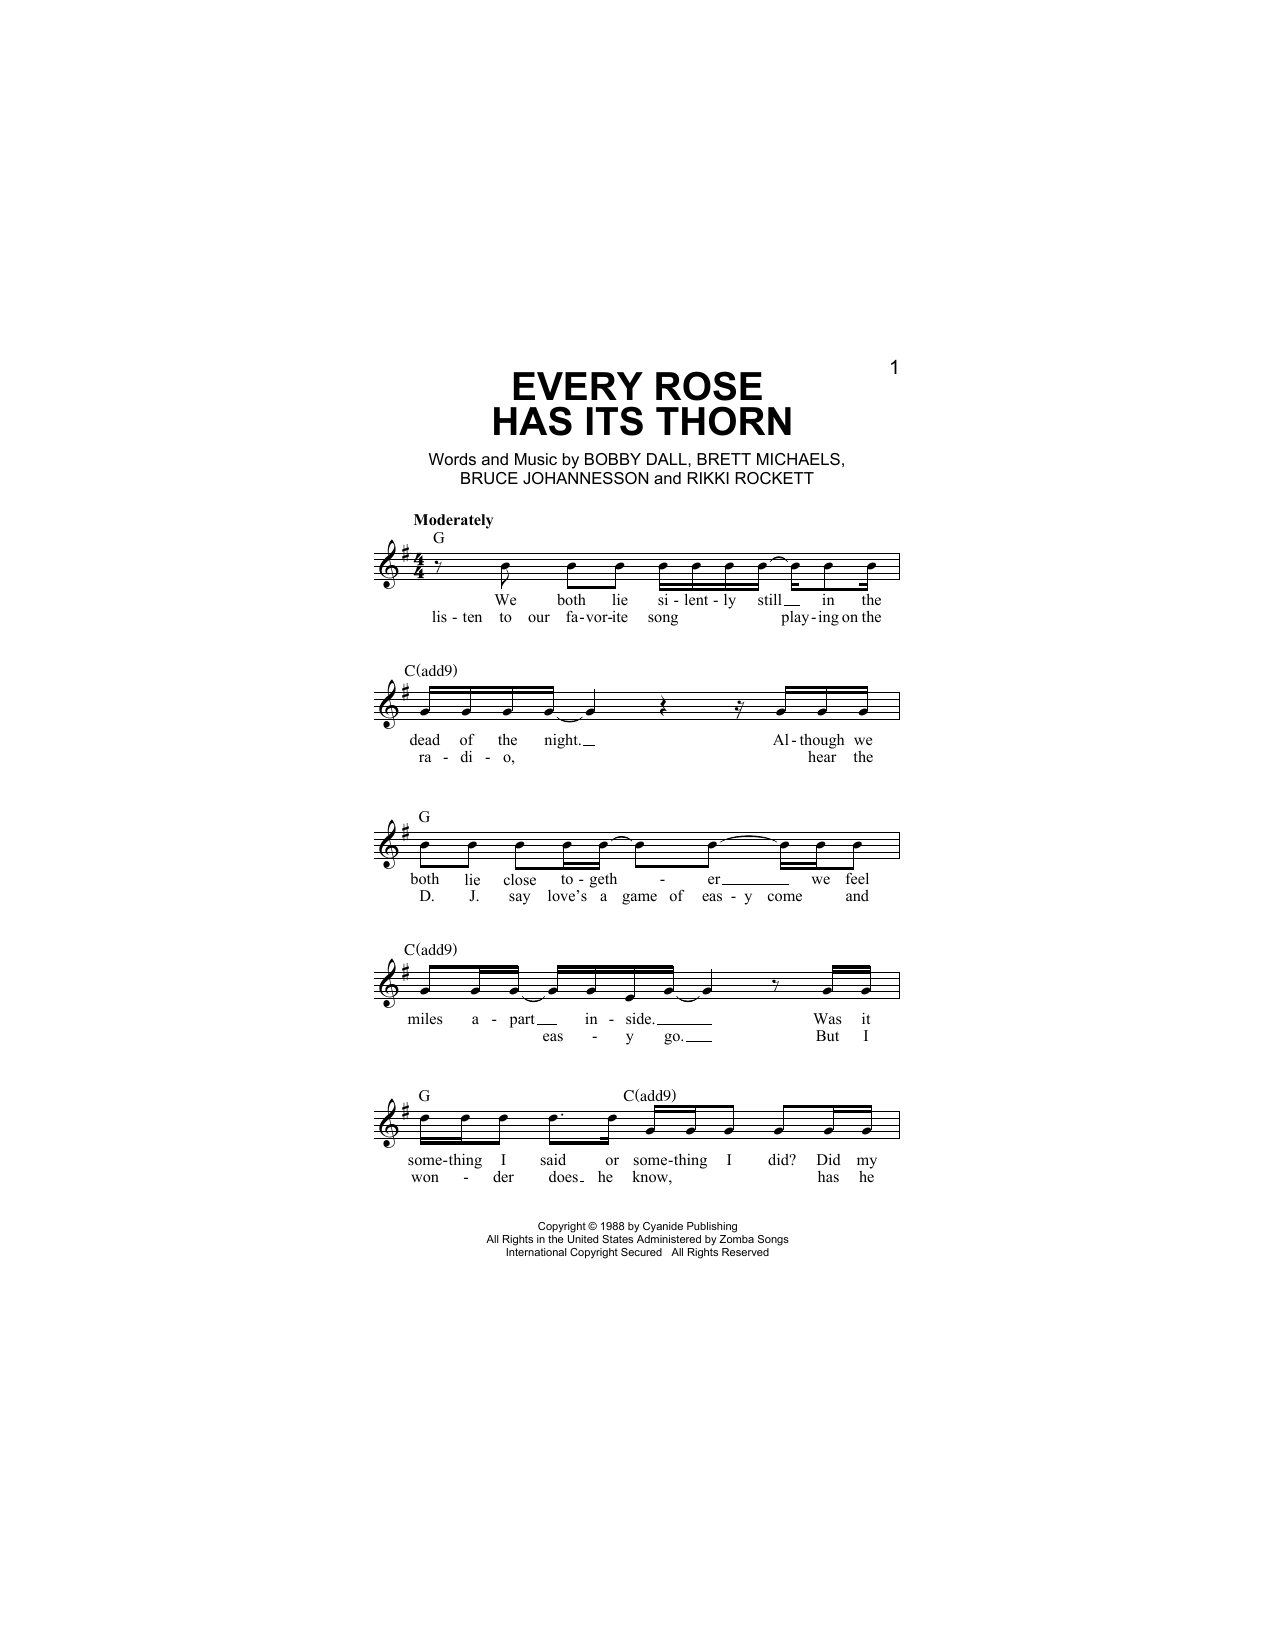 Every Rose Has Its Thorn Chords Every Rose Has Its Thorn Lead Sheet Fake Book Print Sheet Music